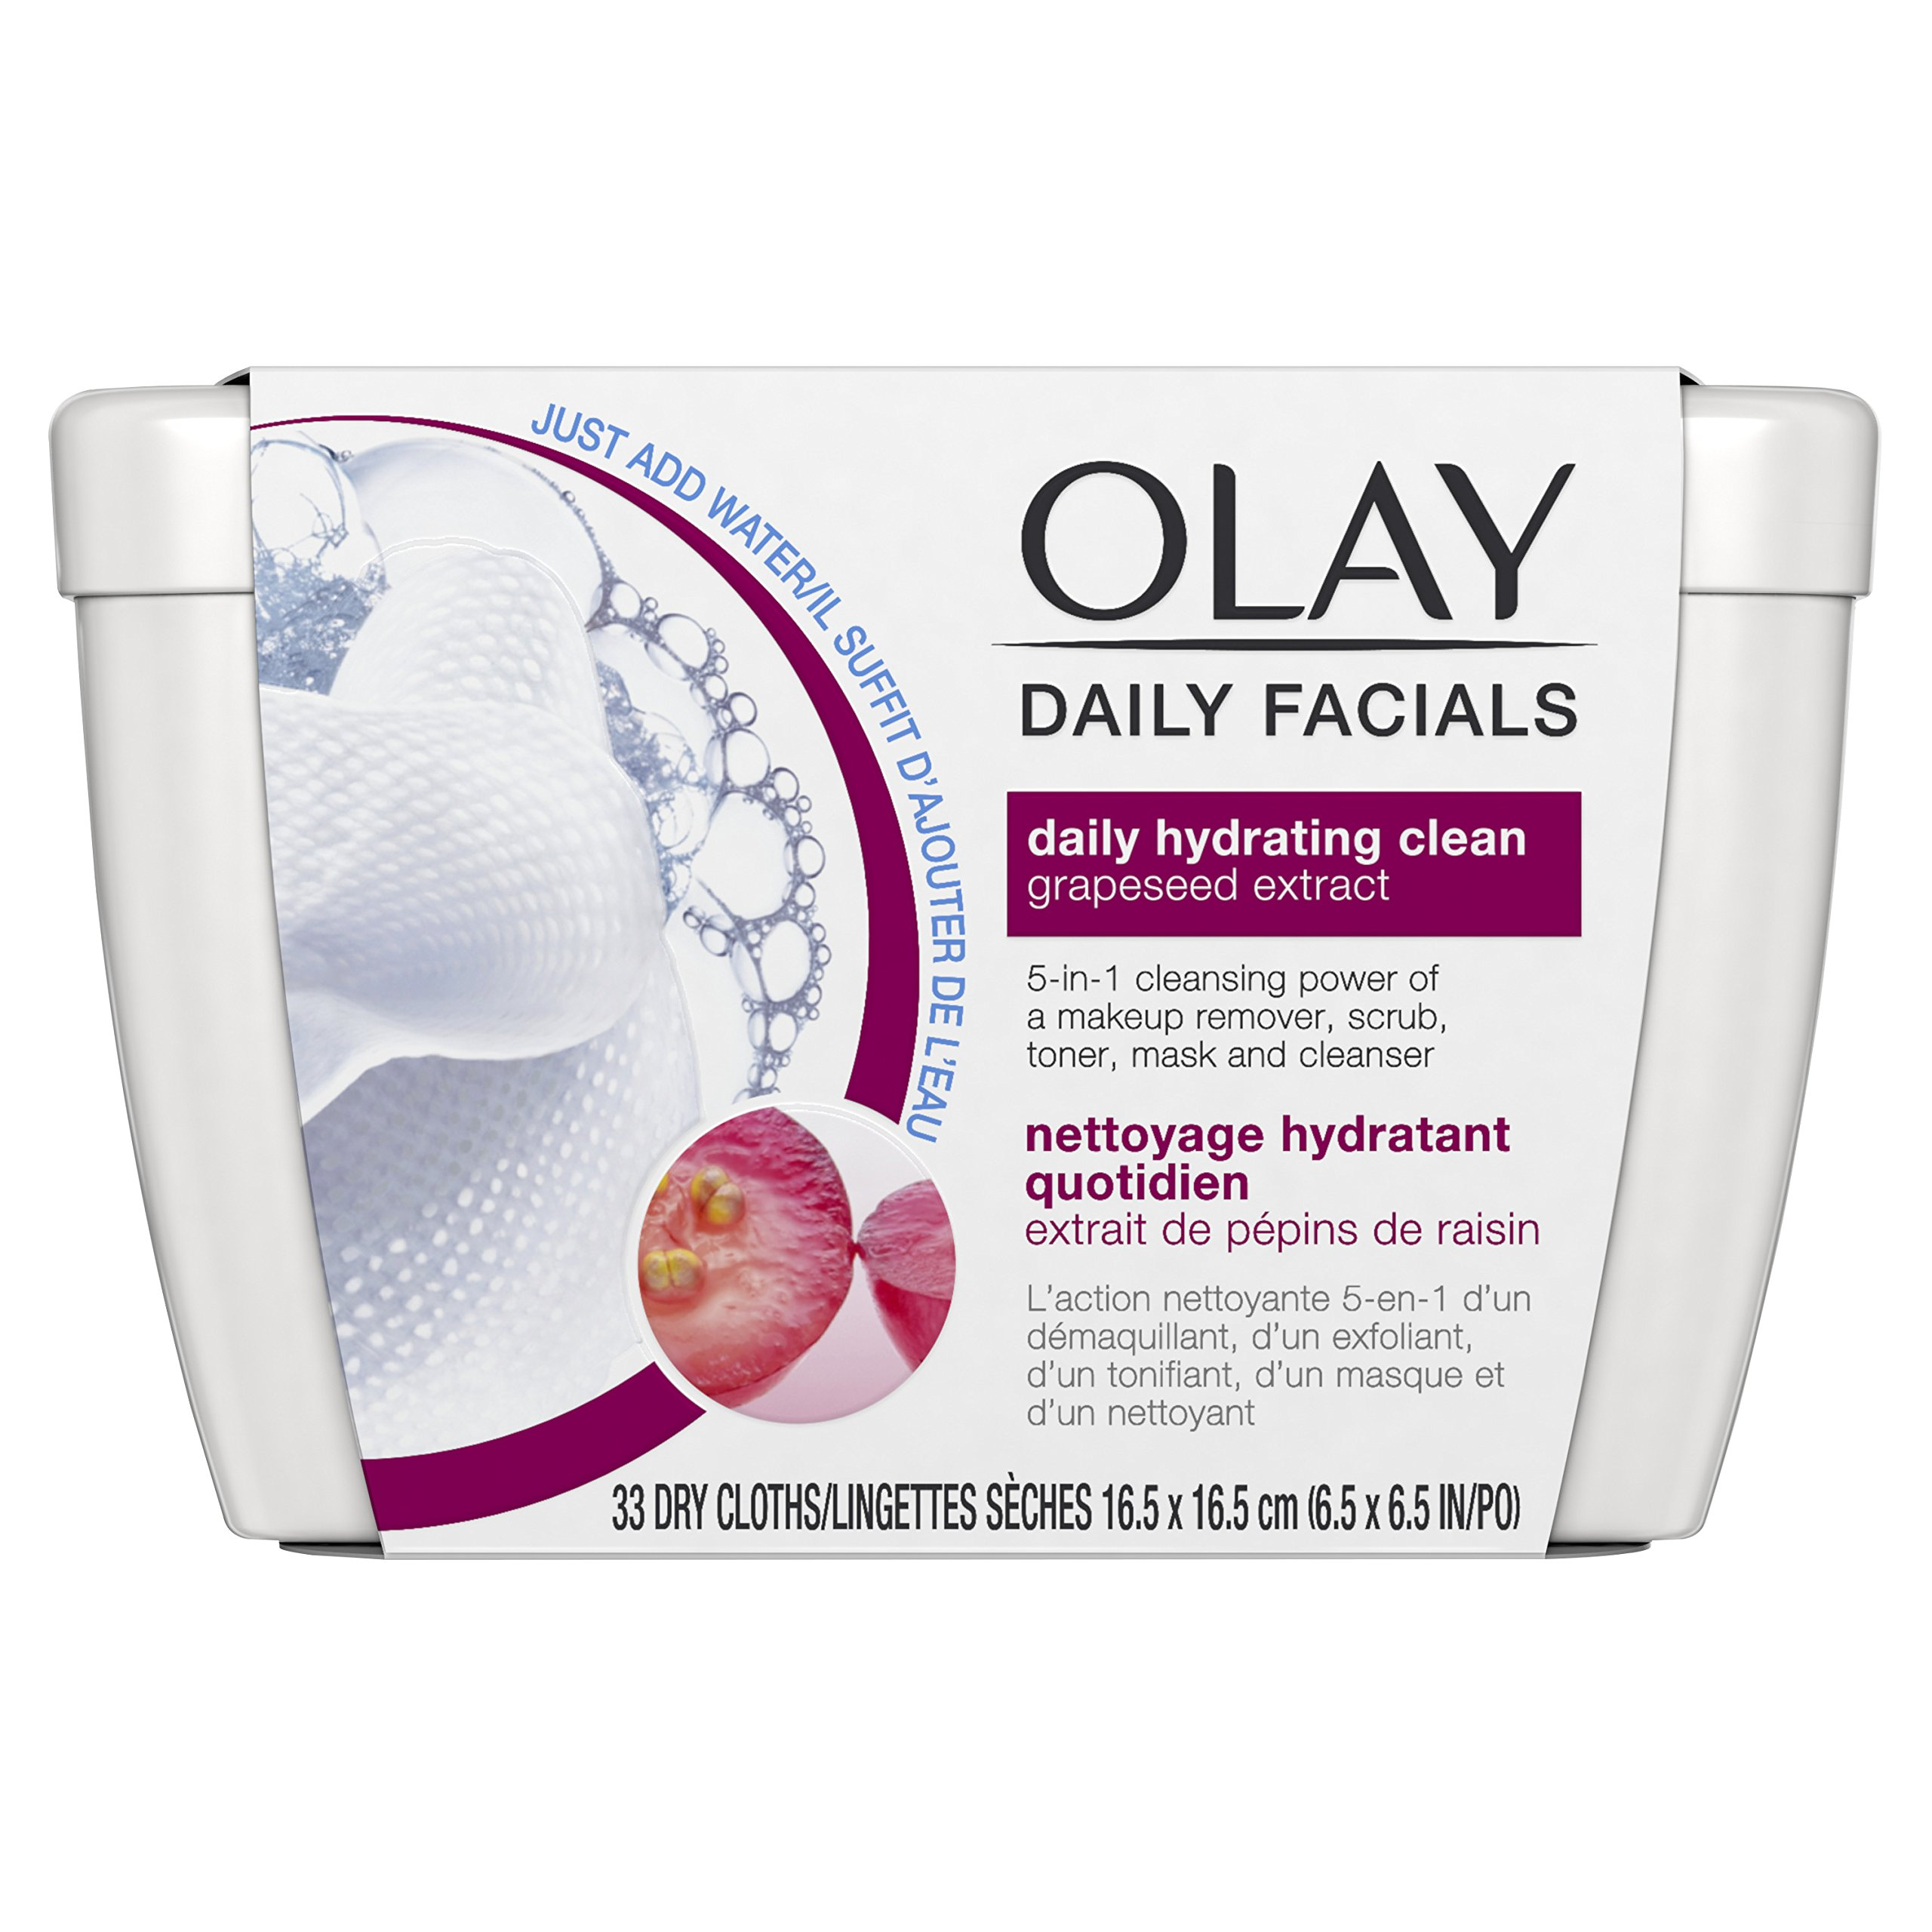 Eye Makeup Remover Wipes By Olay Daily Facials Soap Free And